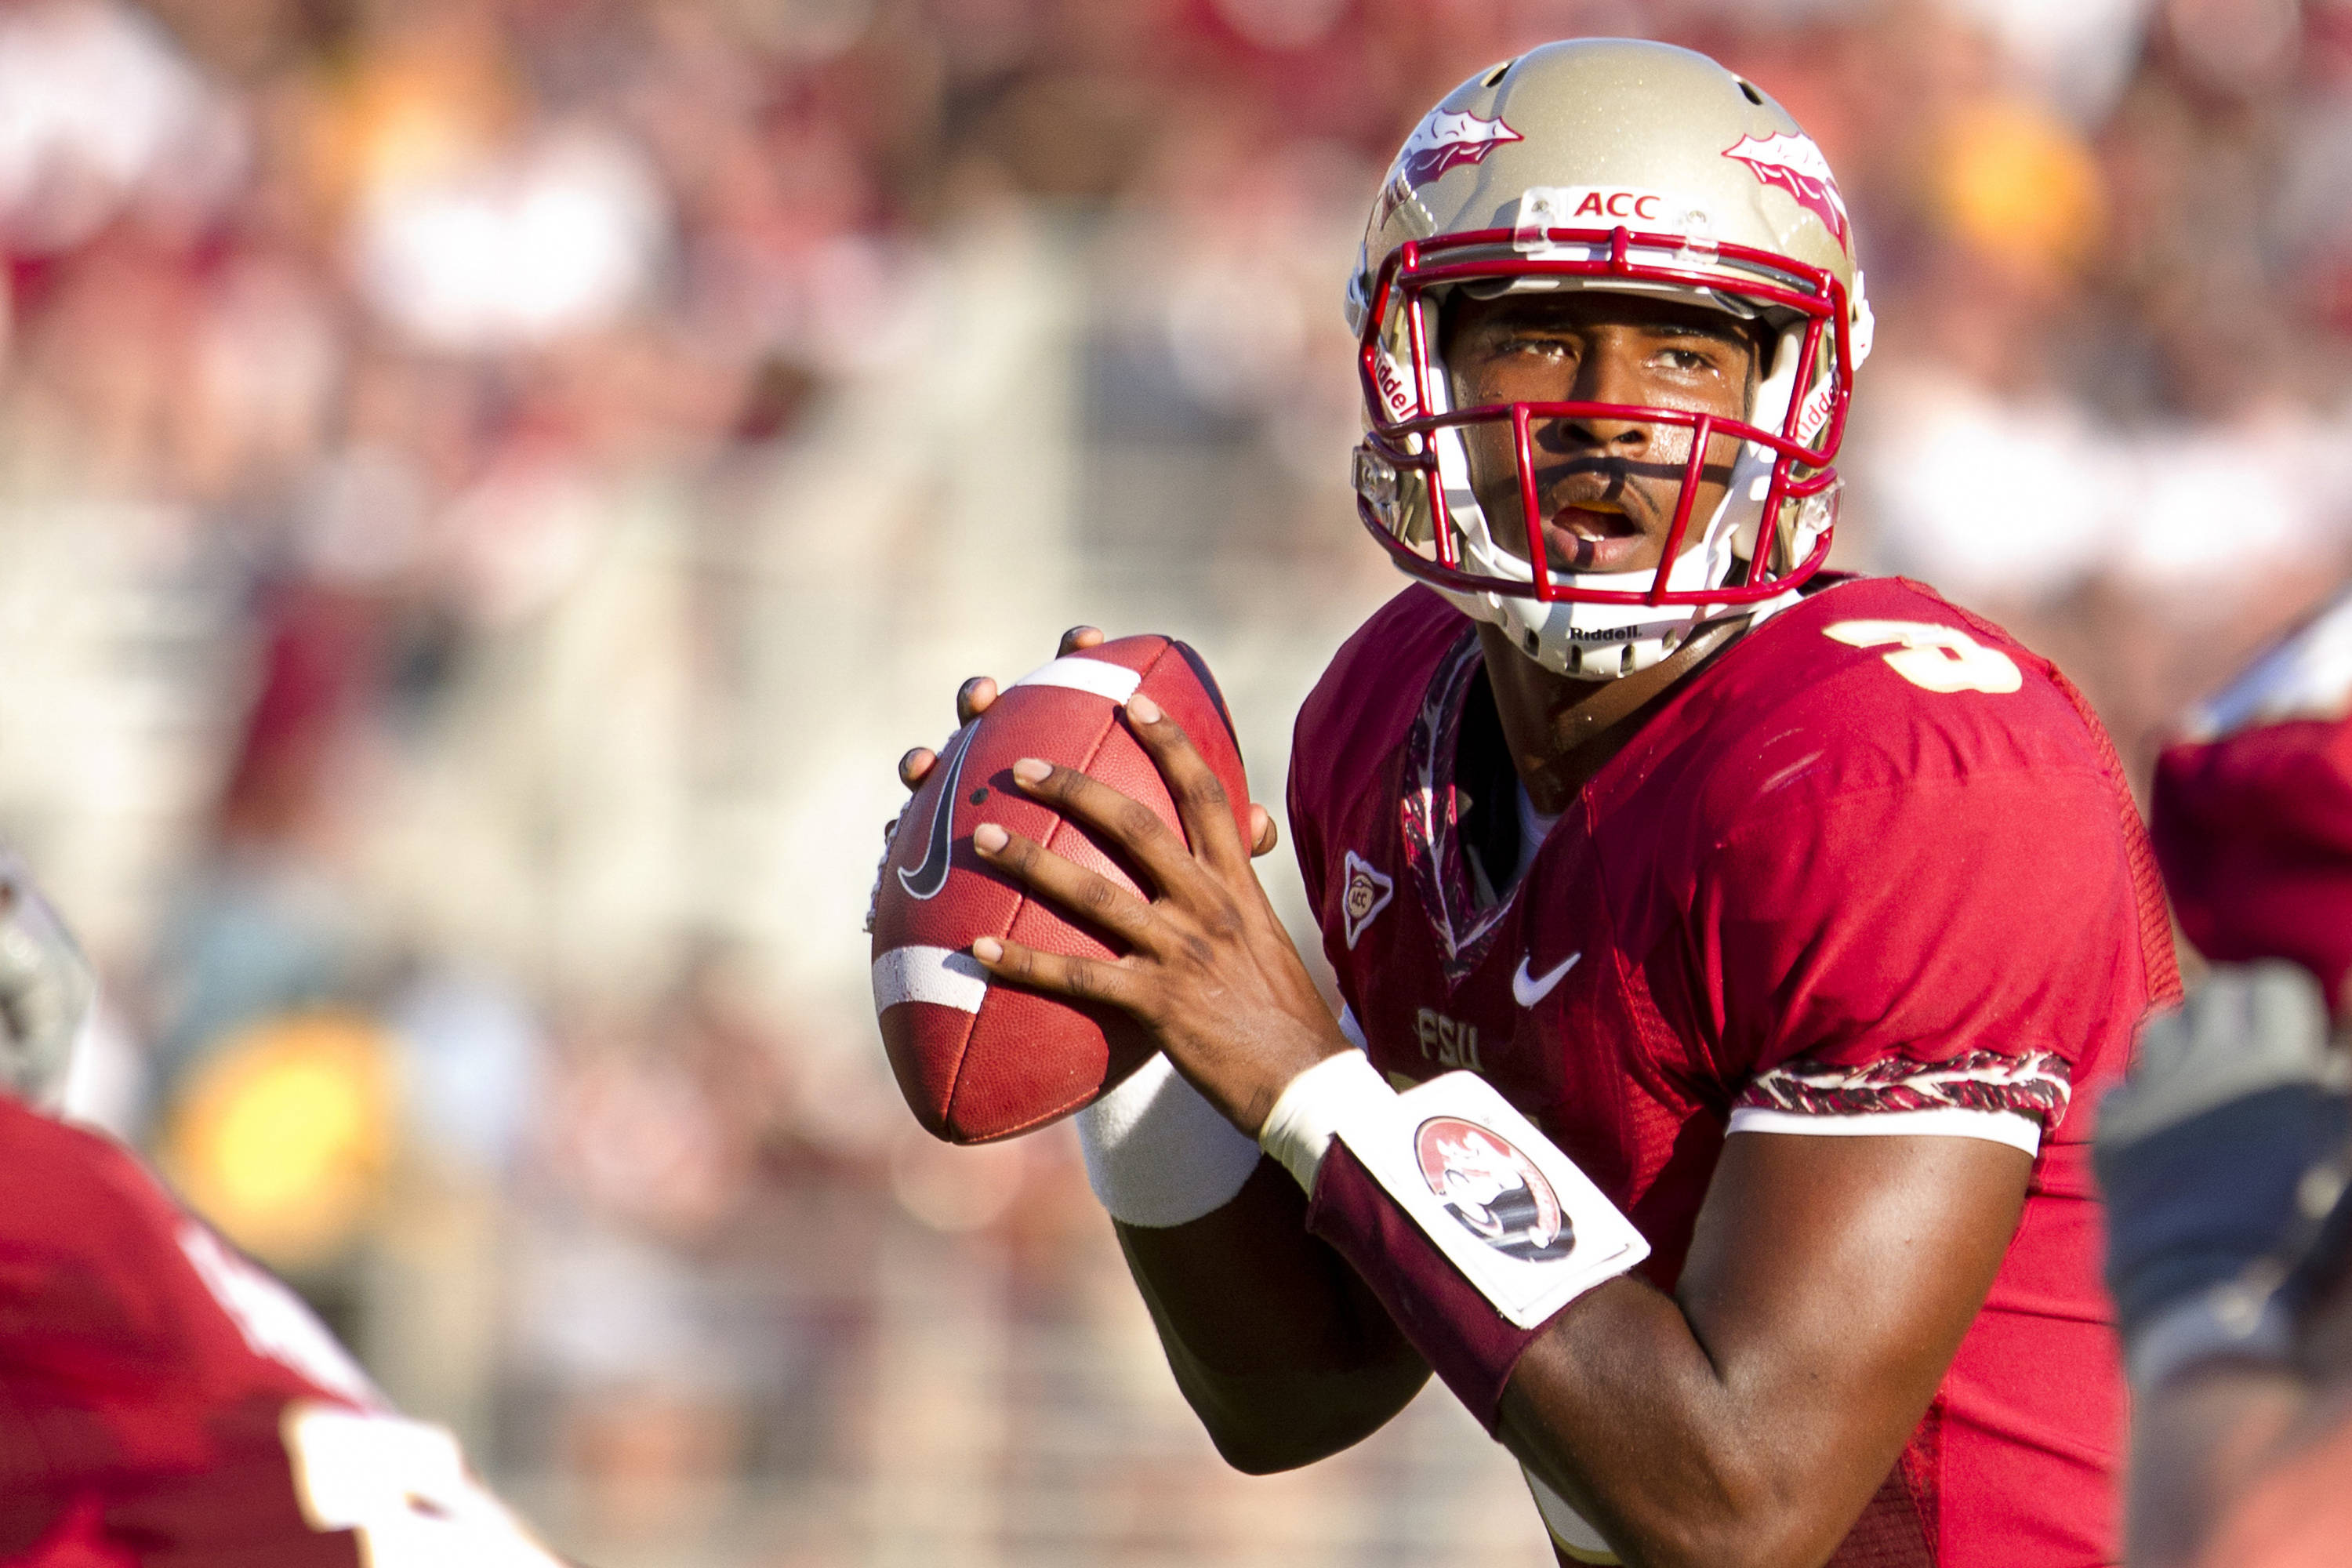 EJ Manuel (3) prepares to throw a pass during the game against CSU on September 10, 2011.